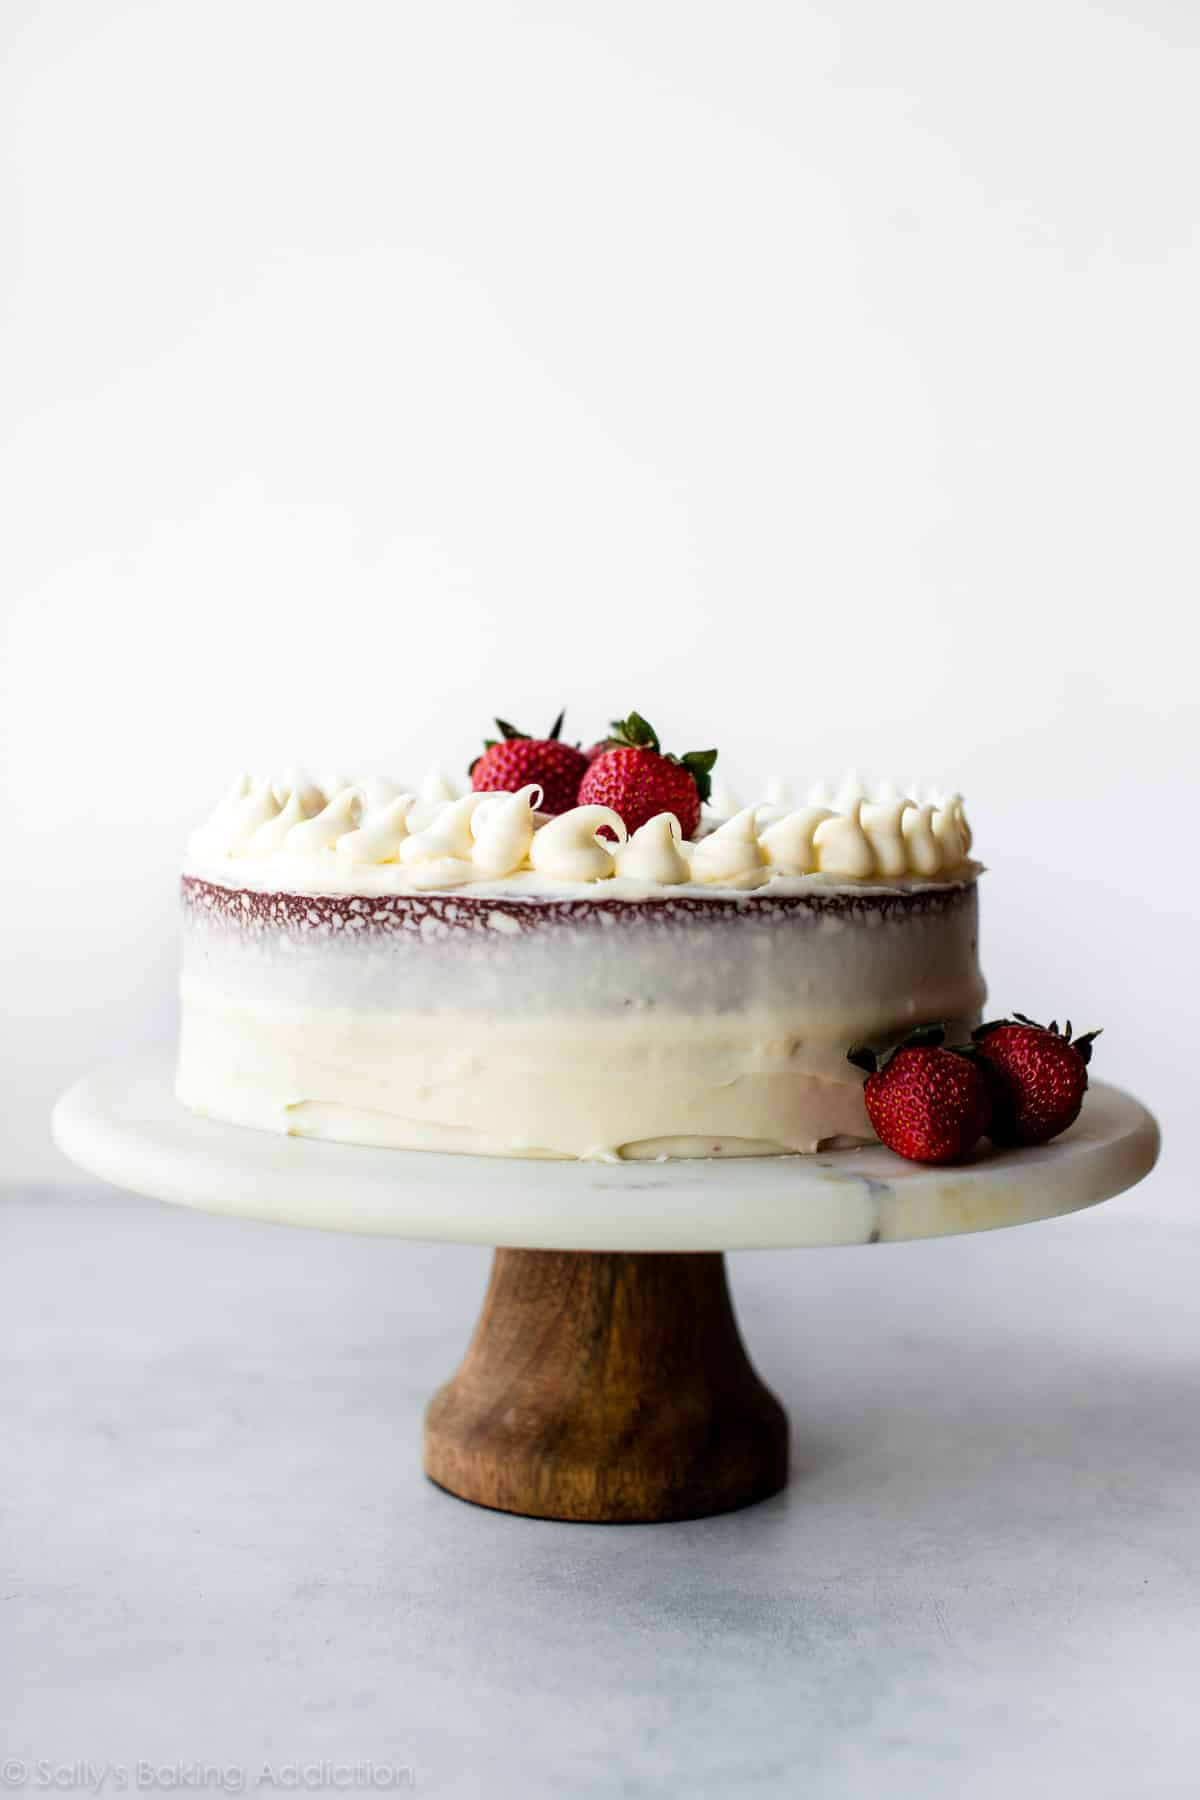 The BEST red velvet cake I've ever had!! Moist, rich, buttery, and topped with cream cheese frosting! Recipe on sallysbakingaddiction.com